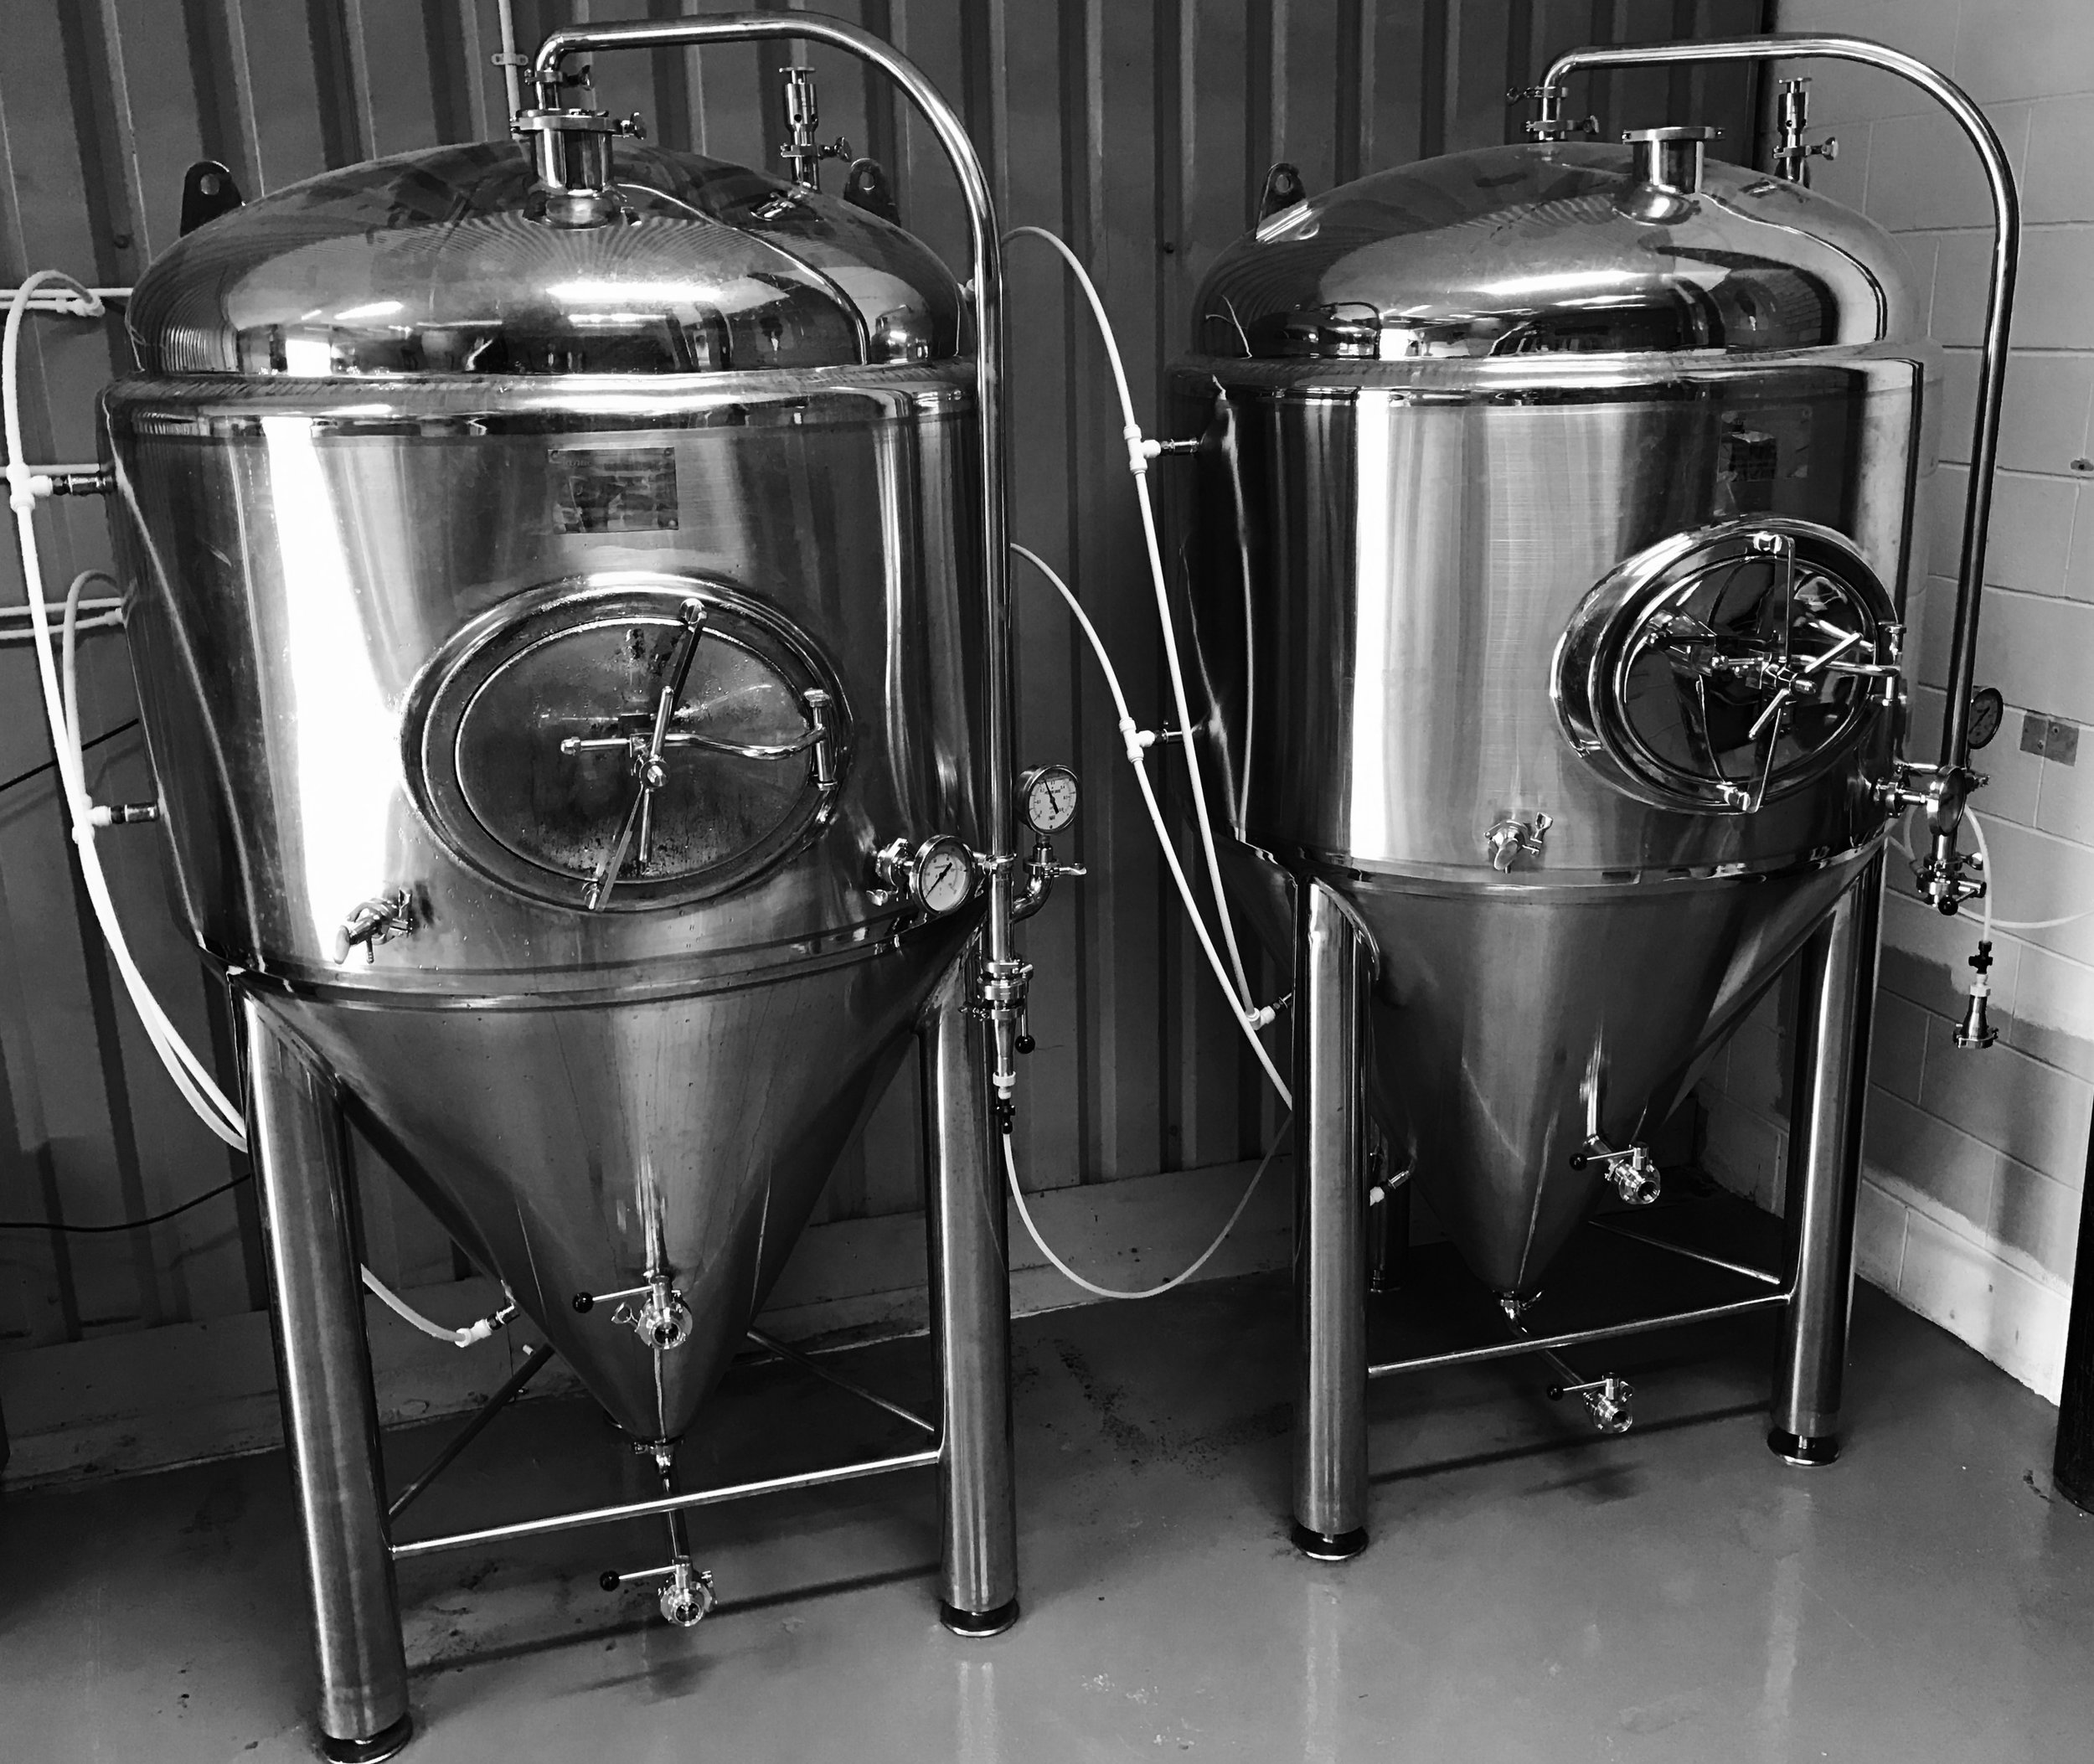 The 1,500 litre unitanks we're using as conditioning tanks